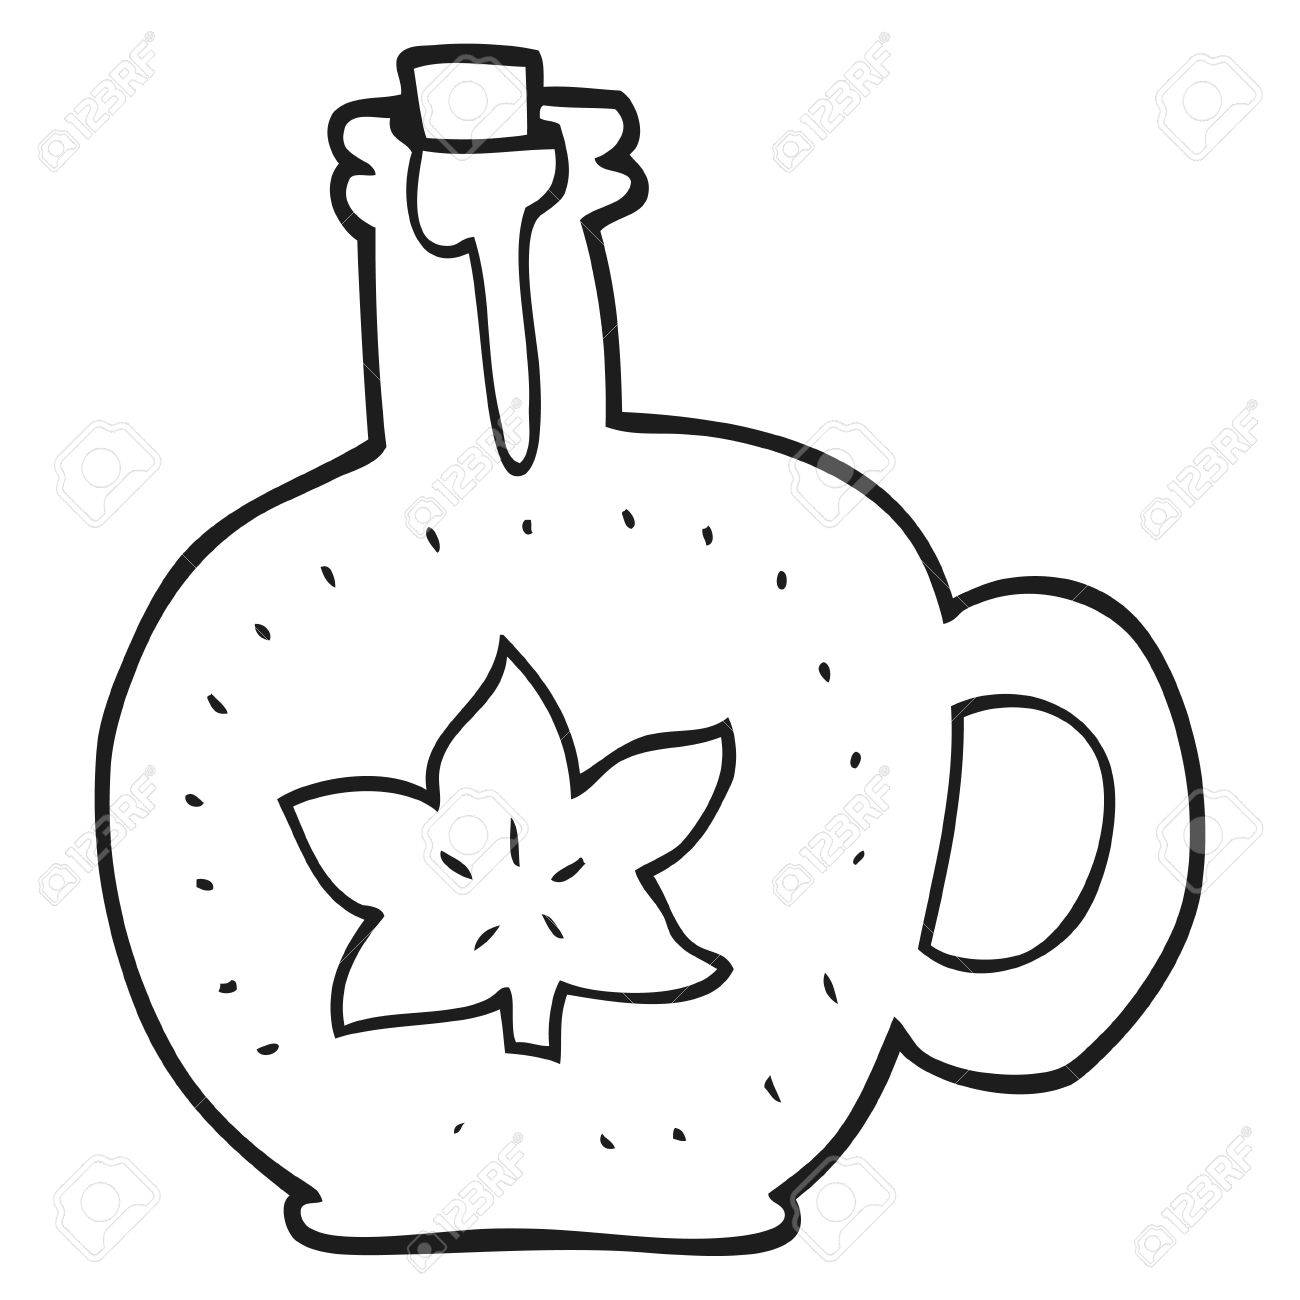 1300x1300 Freehand Drawn Black And White Cartoon Maple Syrup Royalty Free